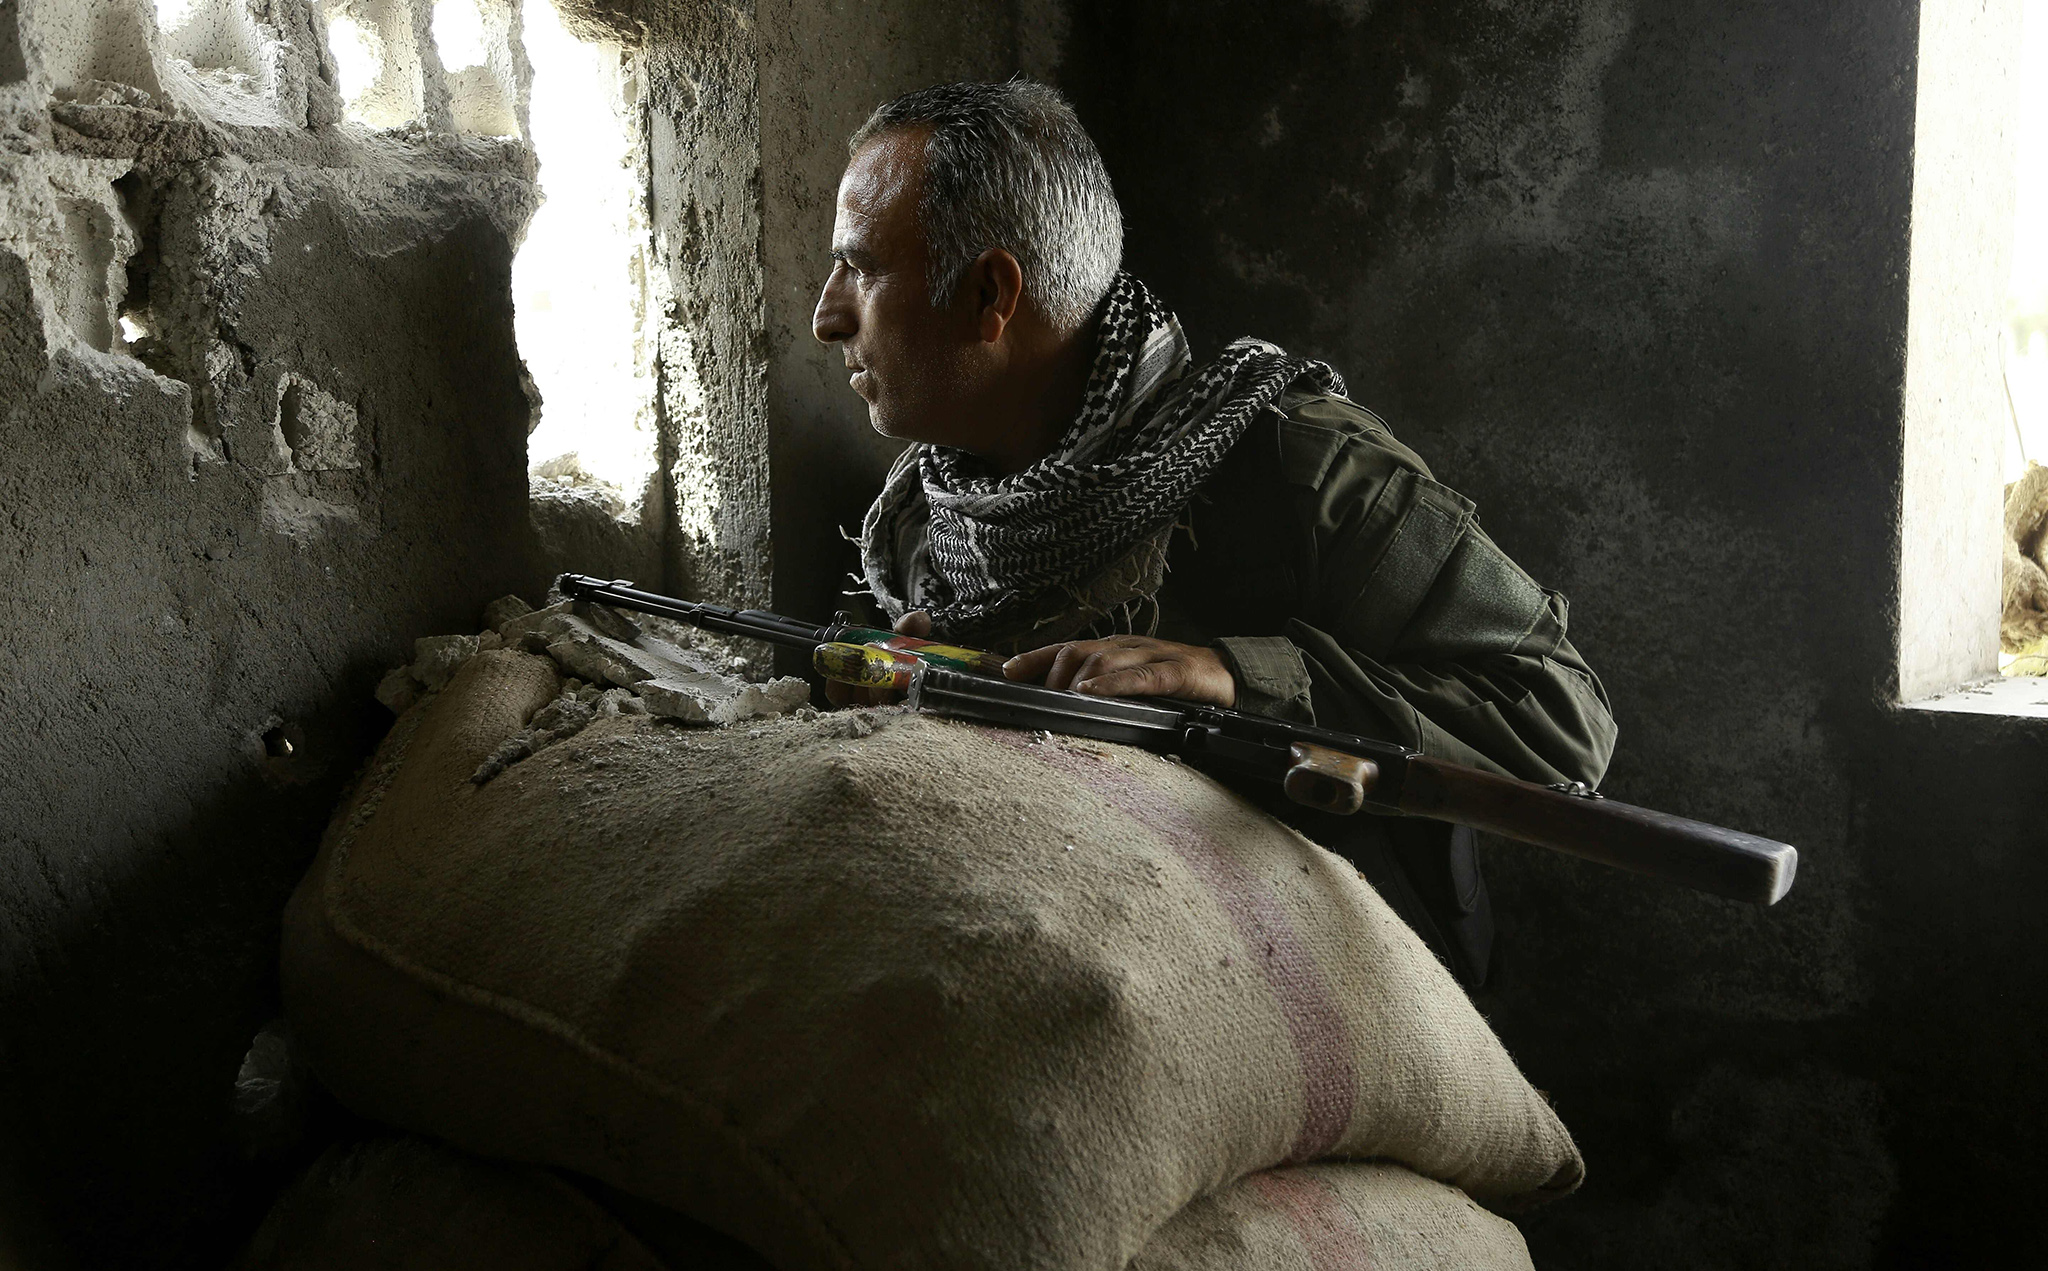 A member of the Kurdish police known as the Asayesh, observes enemy positions from a lookout point in the northeastern Syrian city of Hasakeh during ongoing fighting with regime forces on August 22, 2016. Fierce overnight clashes with regime forces allowed the Kurds to advance mostly in the south of the city, the Syrian Observatory for Human Rights said.   / AFP PHOTO / DELIL SOULEIMANDELIL SOULEIMAN/AFP/Getty Images